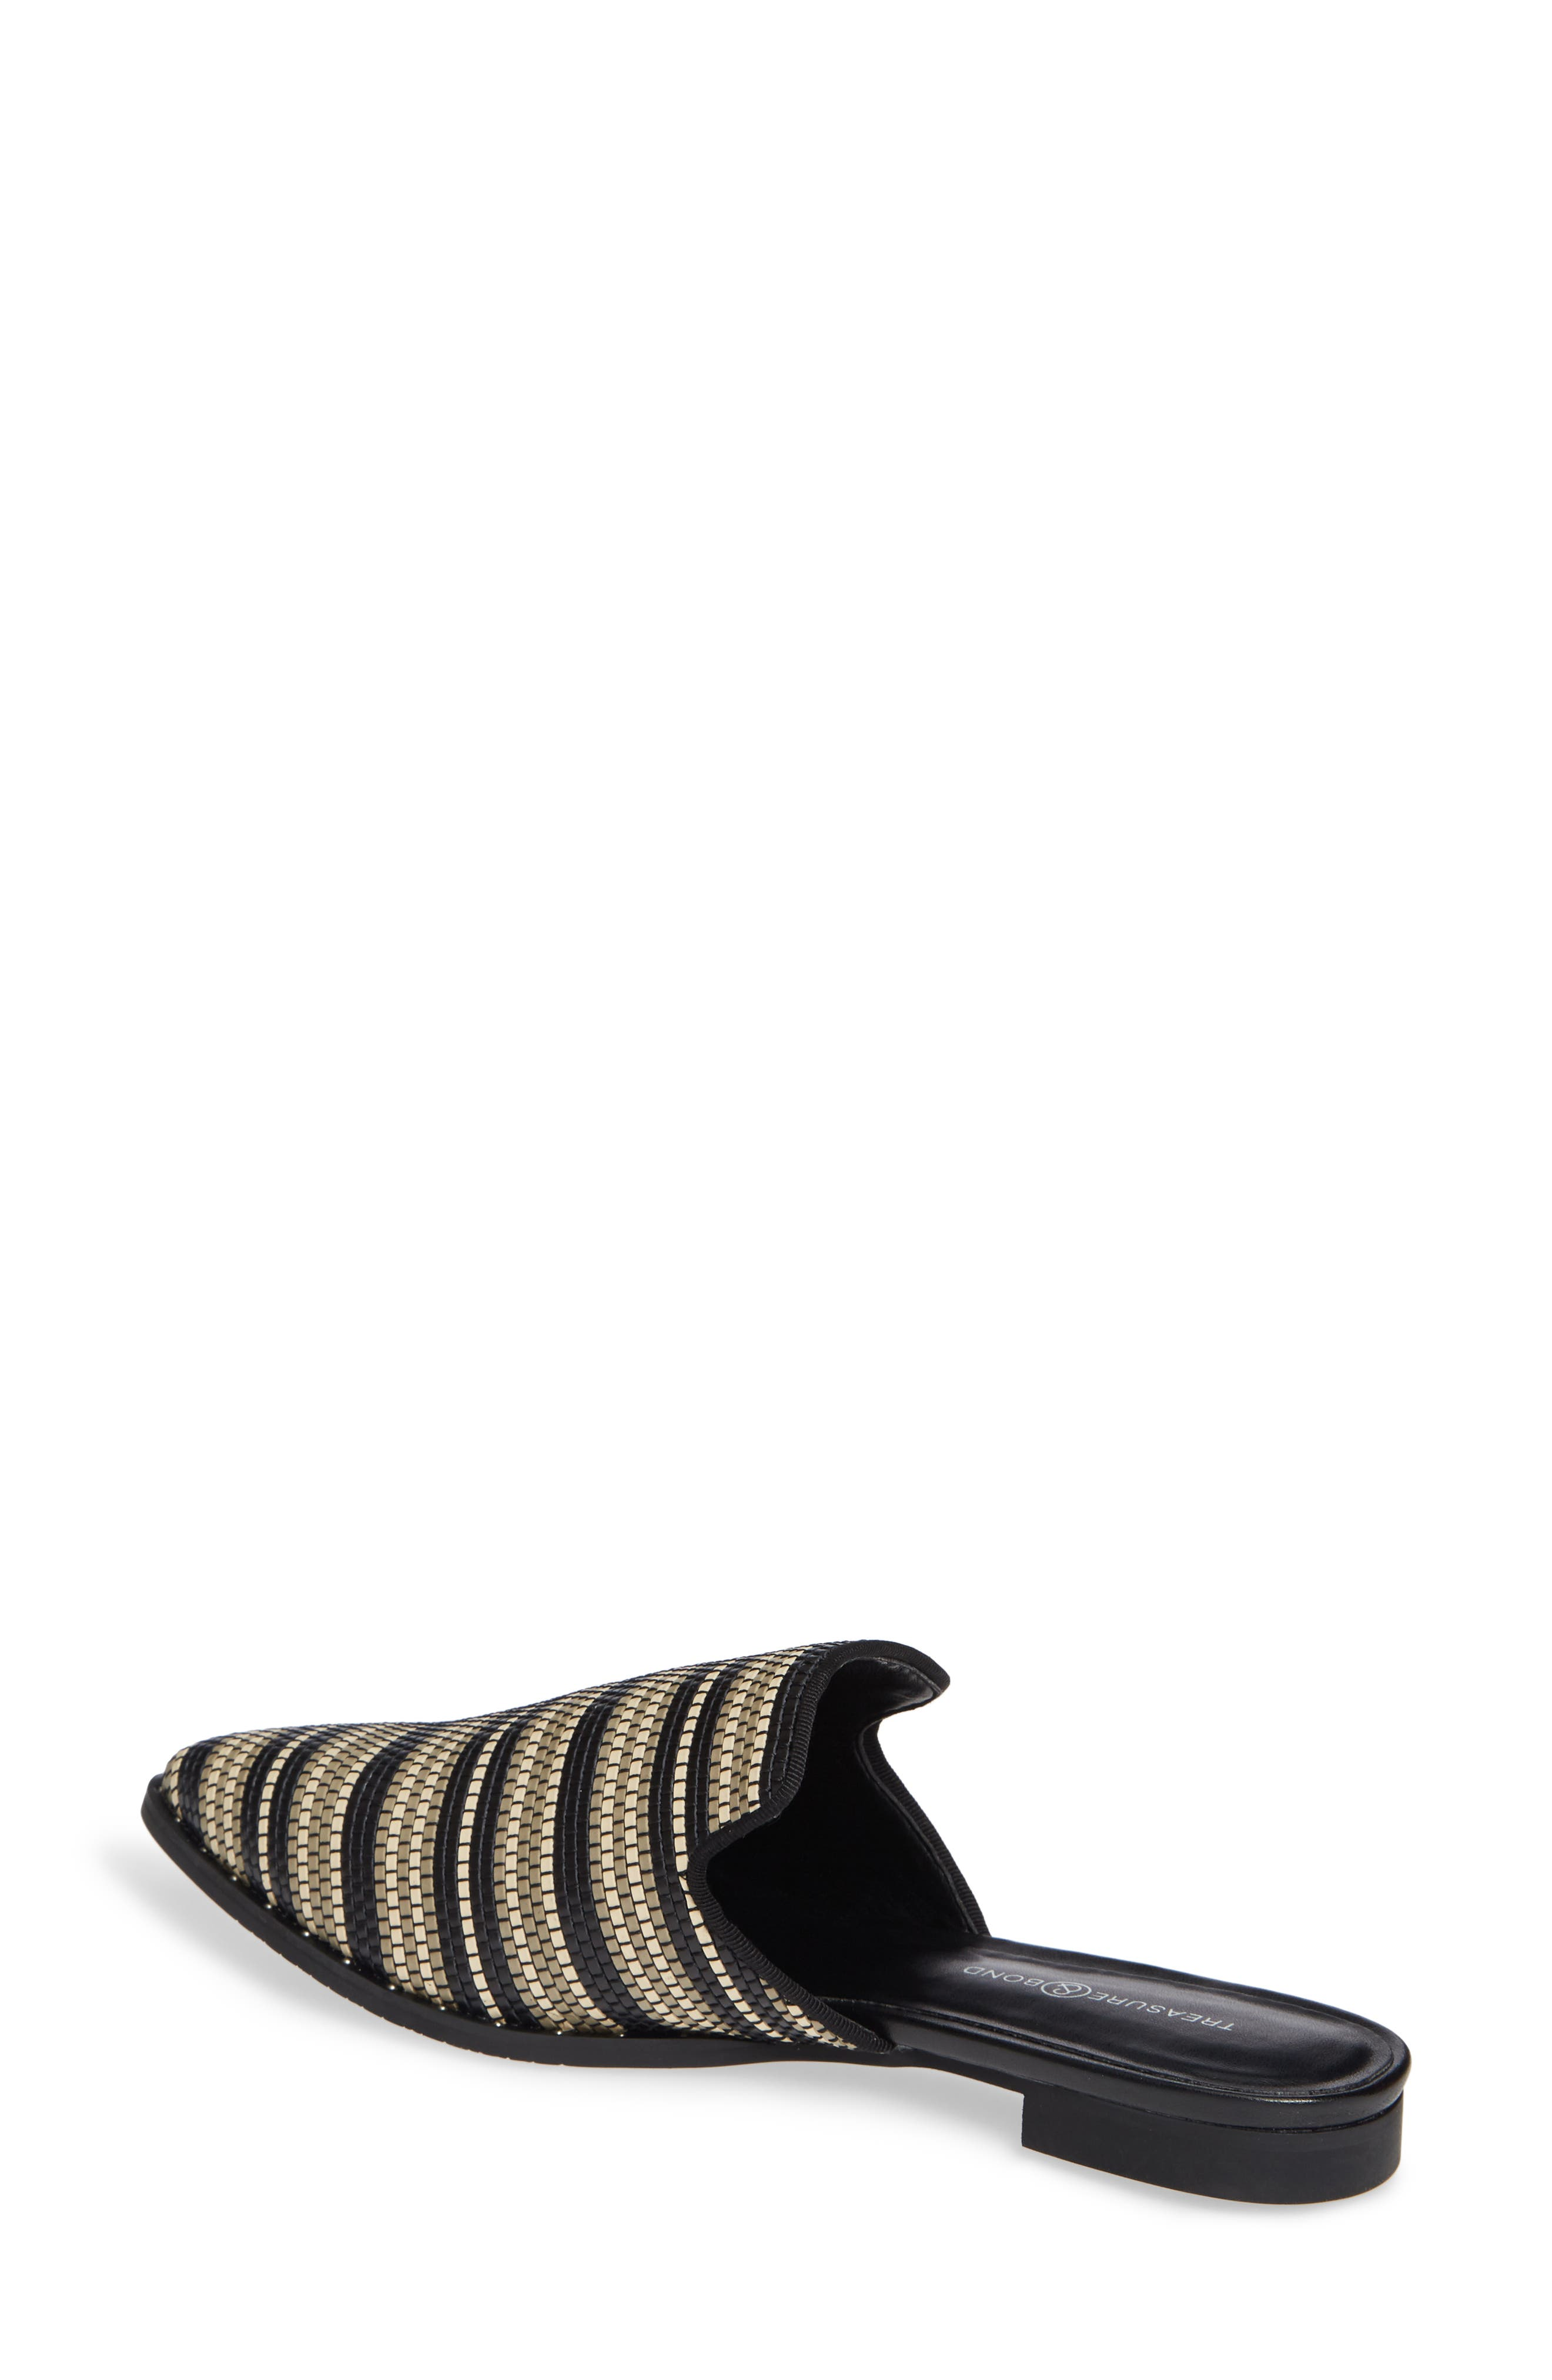 Keaton Loafer Mule,                             Alternate thumbnail 2, color,                             BLACK WOVEN FAUX LEATHER